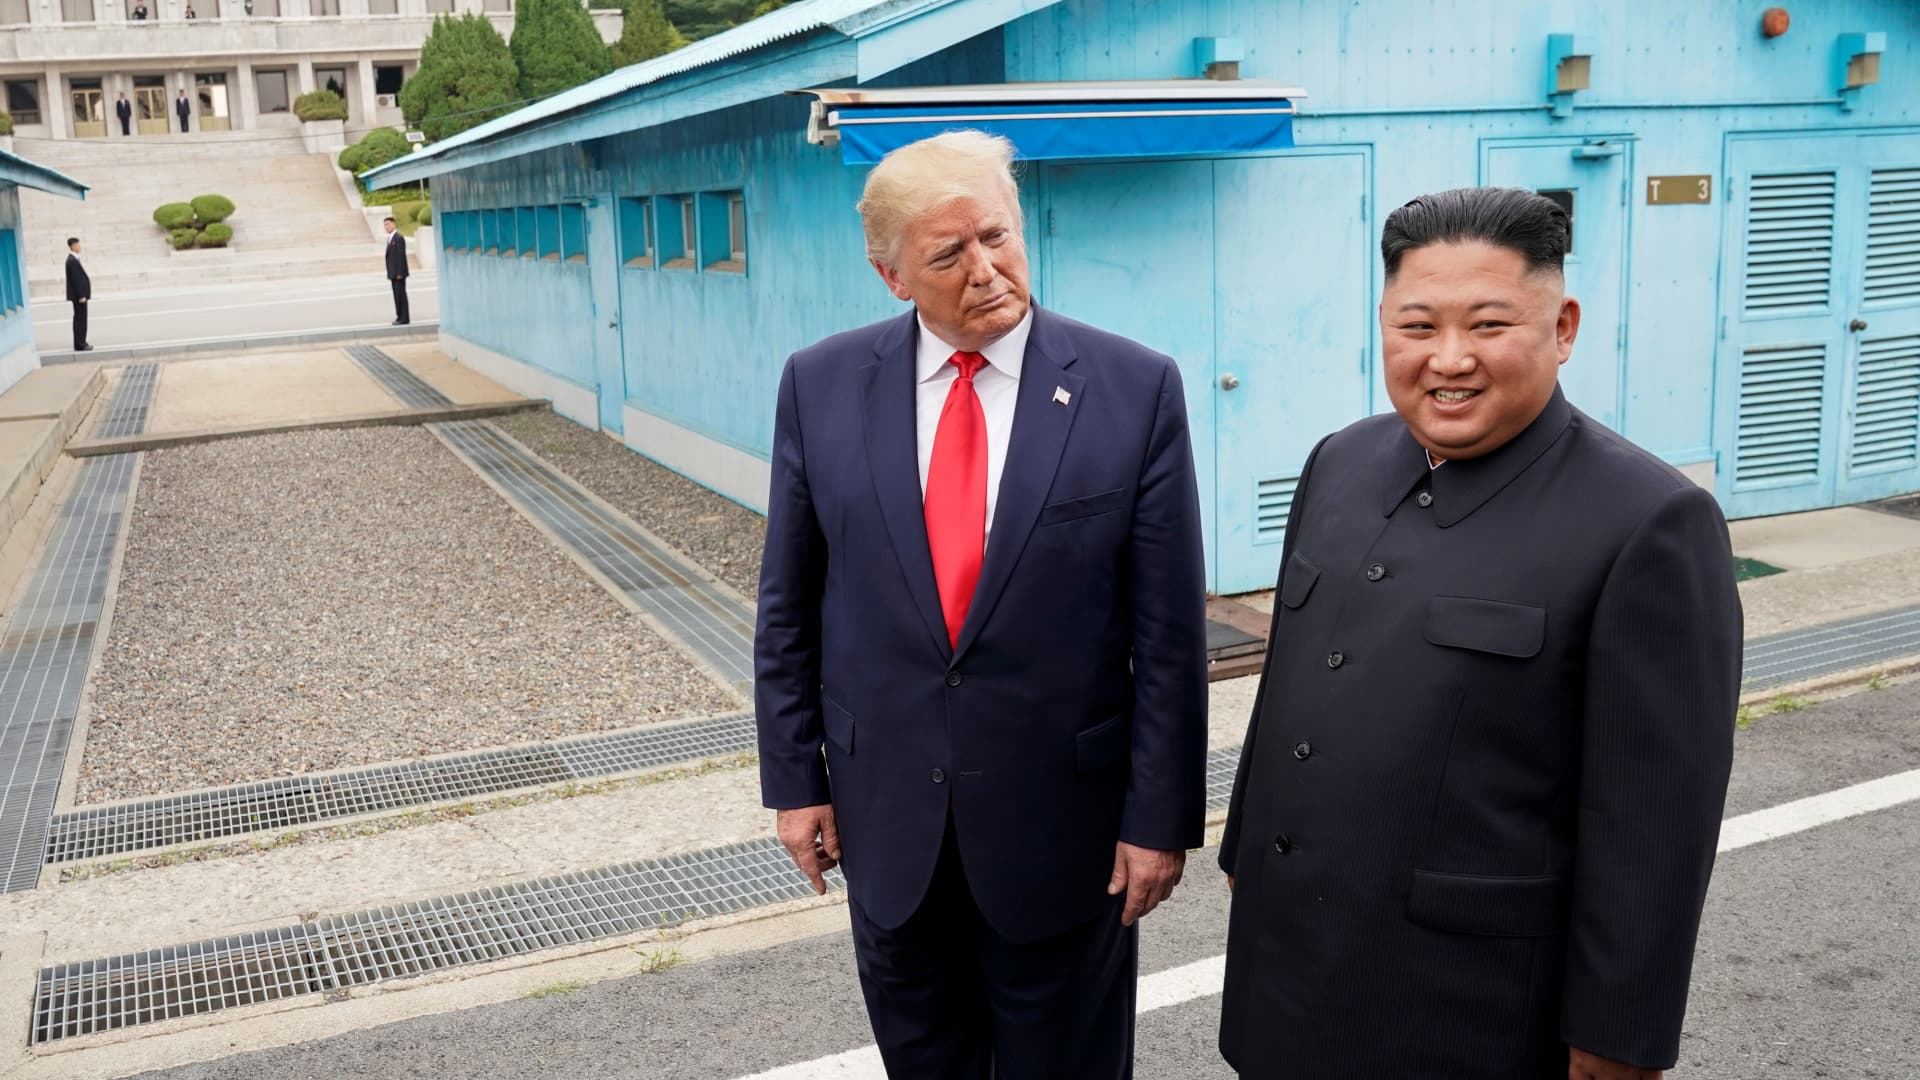 President Donald Trump meets with North Korean leader Kim Jong Un at the demilitarized zone separating the two Koreas, in Panmunjom, South Korea, June 30, 2019.